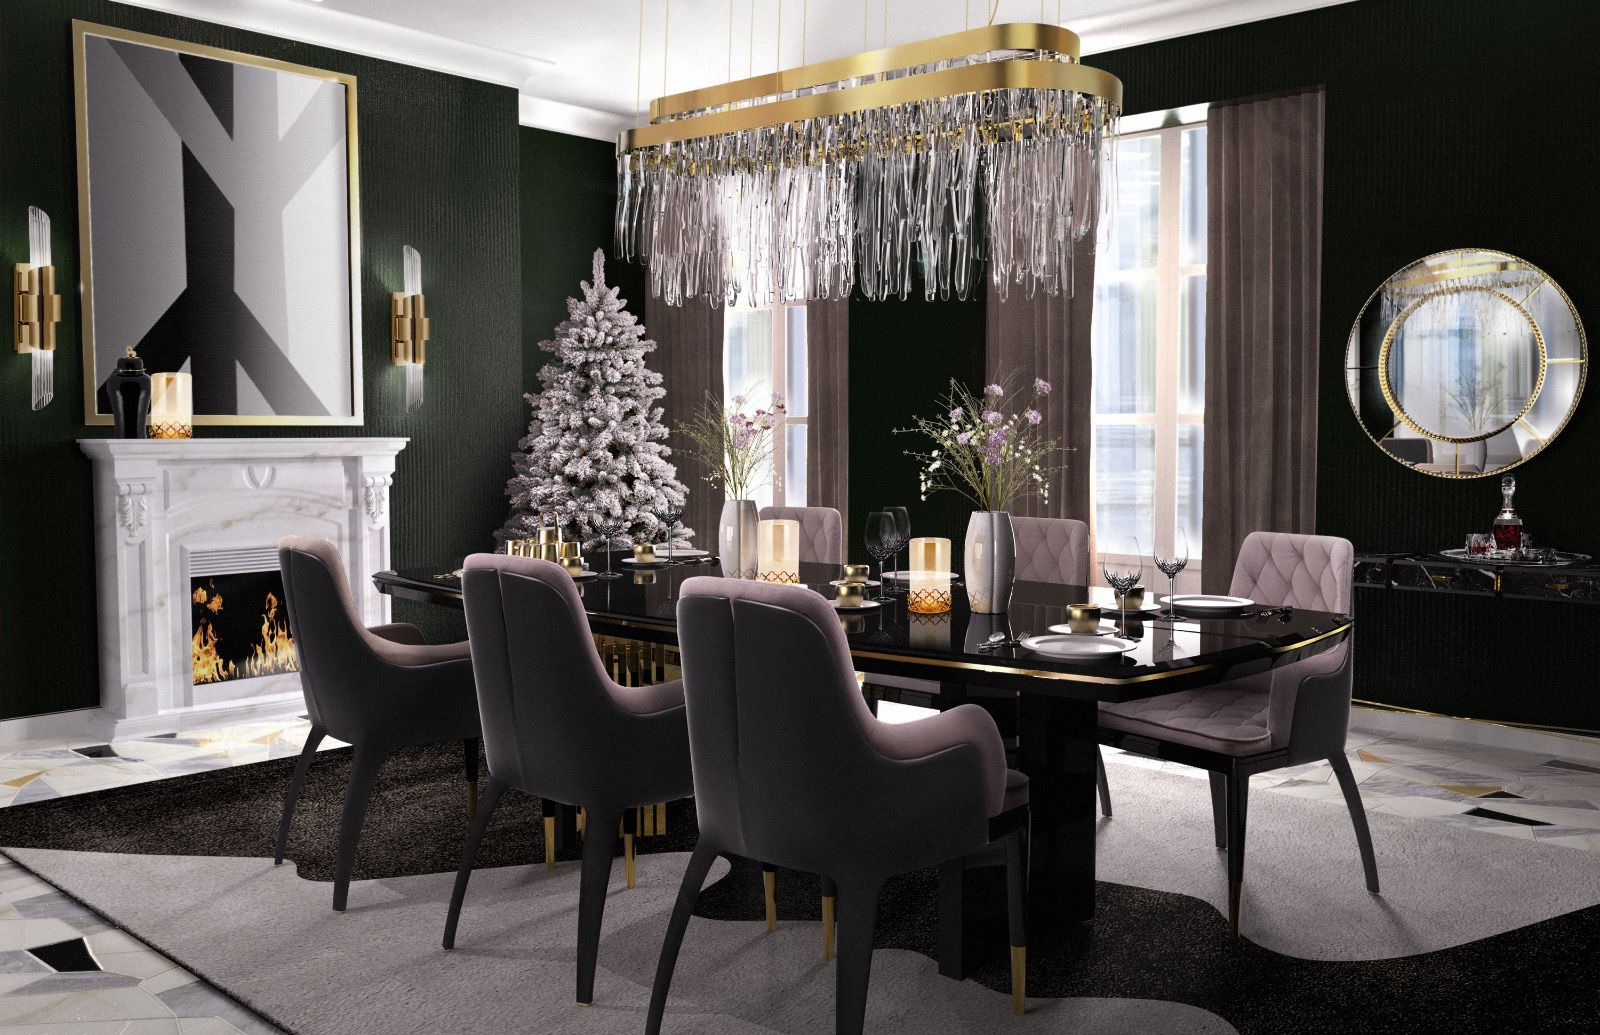 the modern dining room lifestyles wcfcourier comdining room main jpg